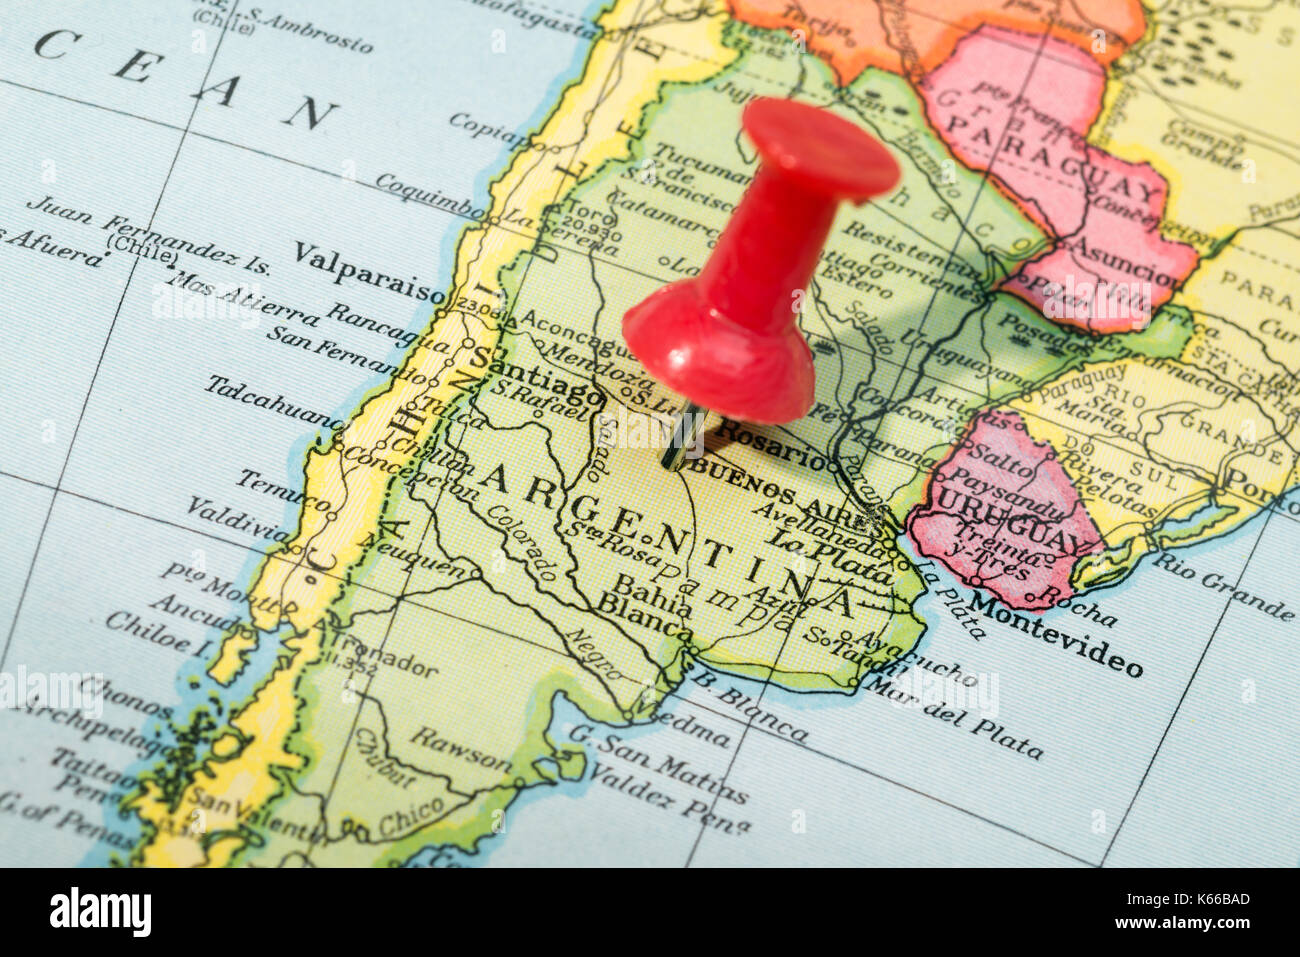 Latin america map stock photos latin america map stock images alamy vintage style map showing argentina with push pin stock image gumiabroncs Gallery